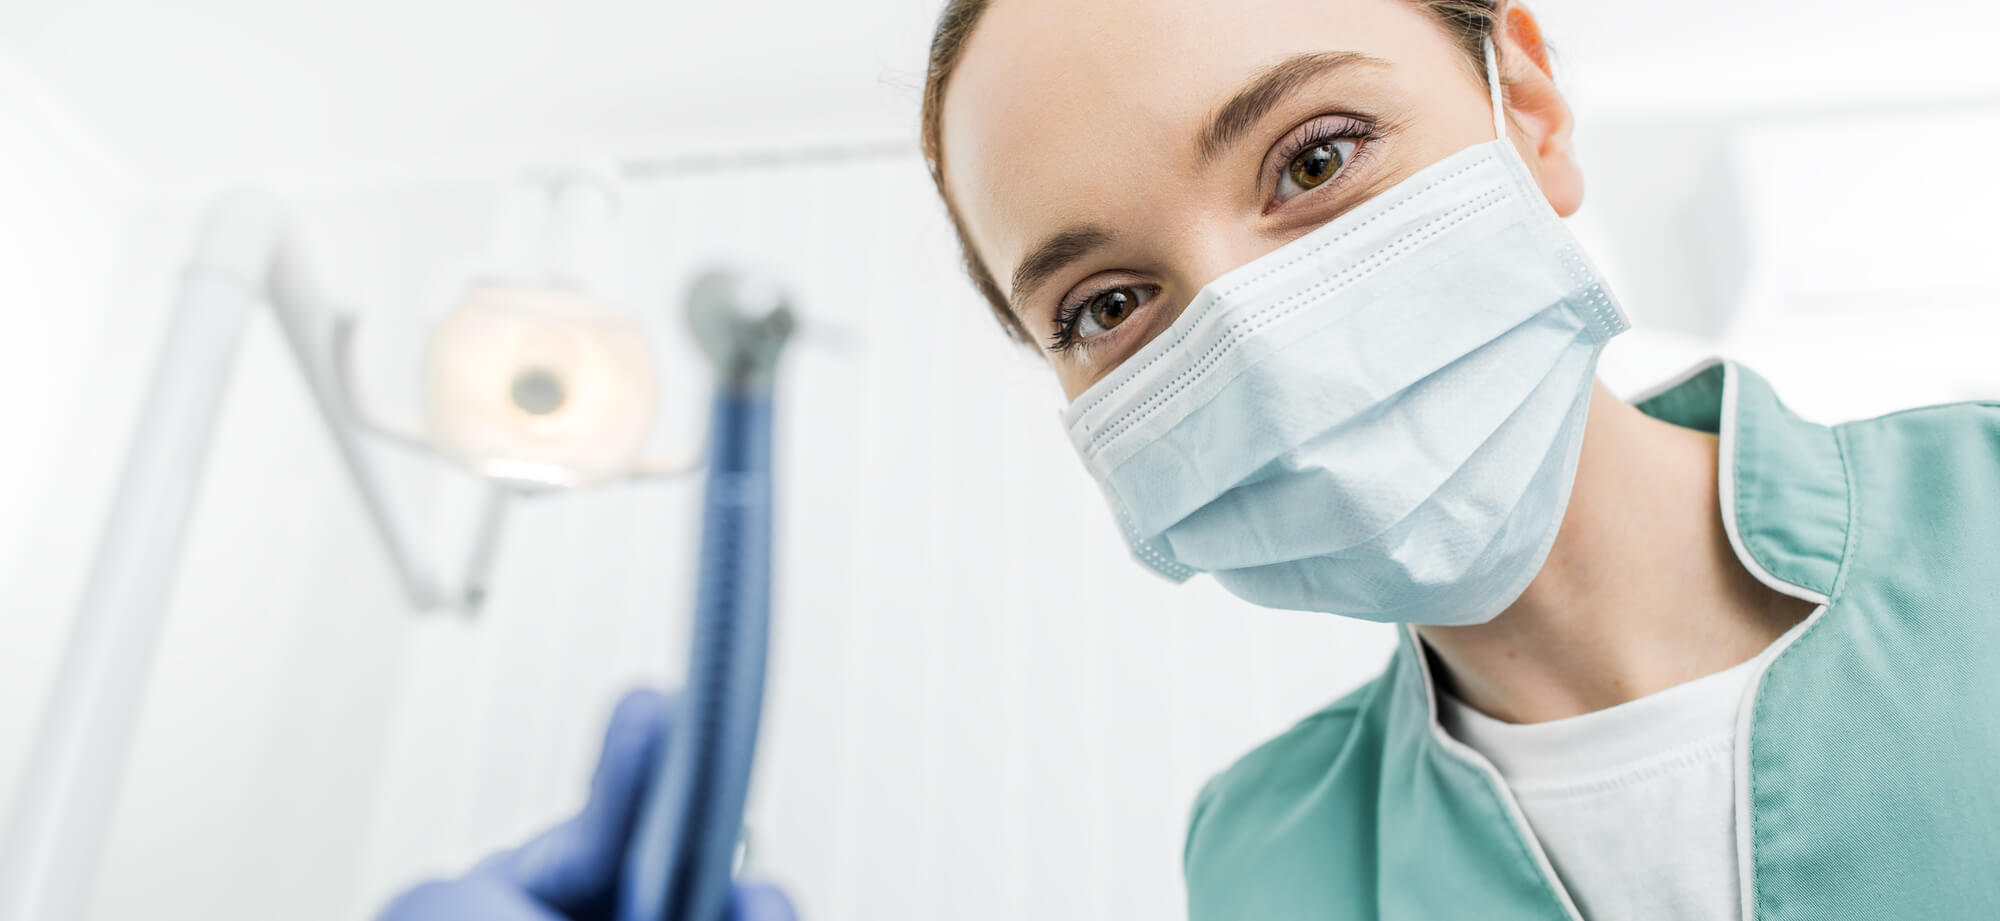 Female Orthodontist Smiling with Medical Mask On